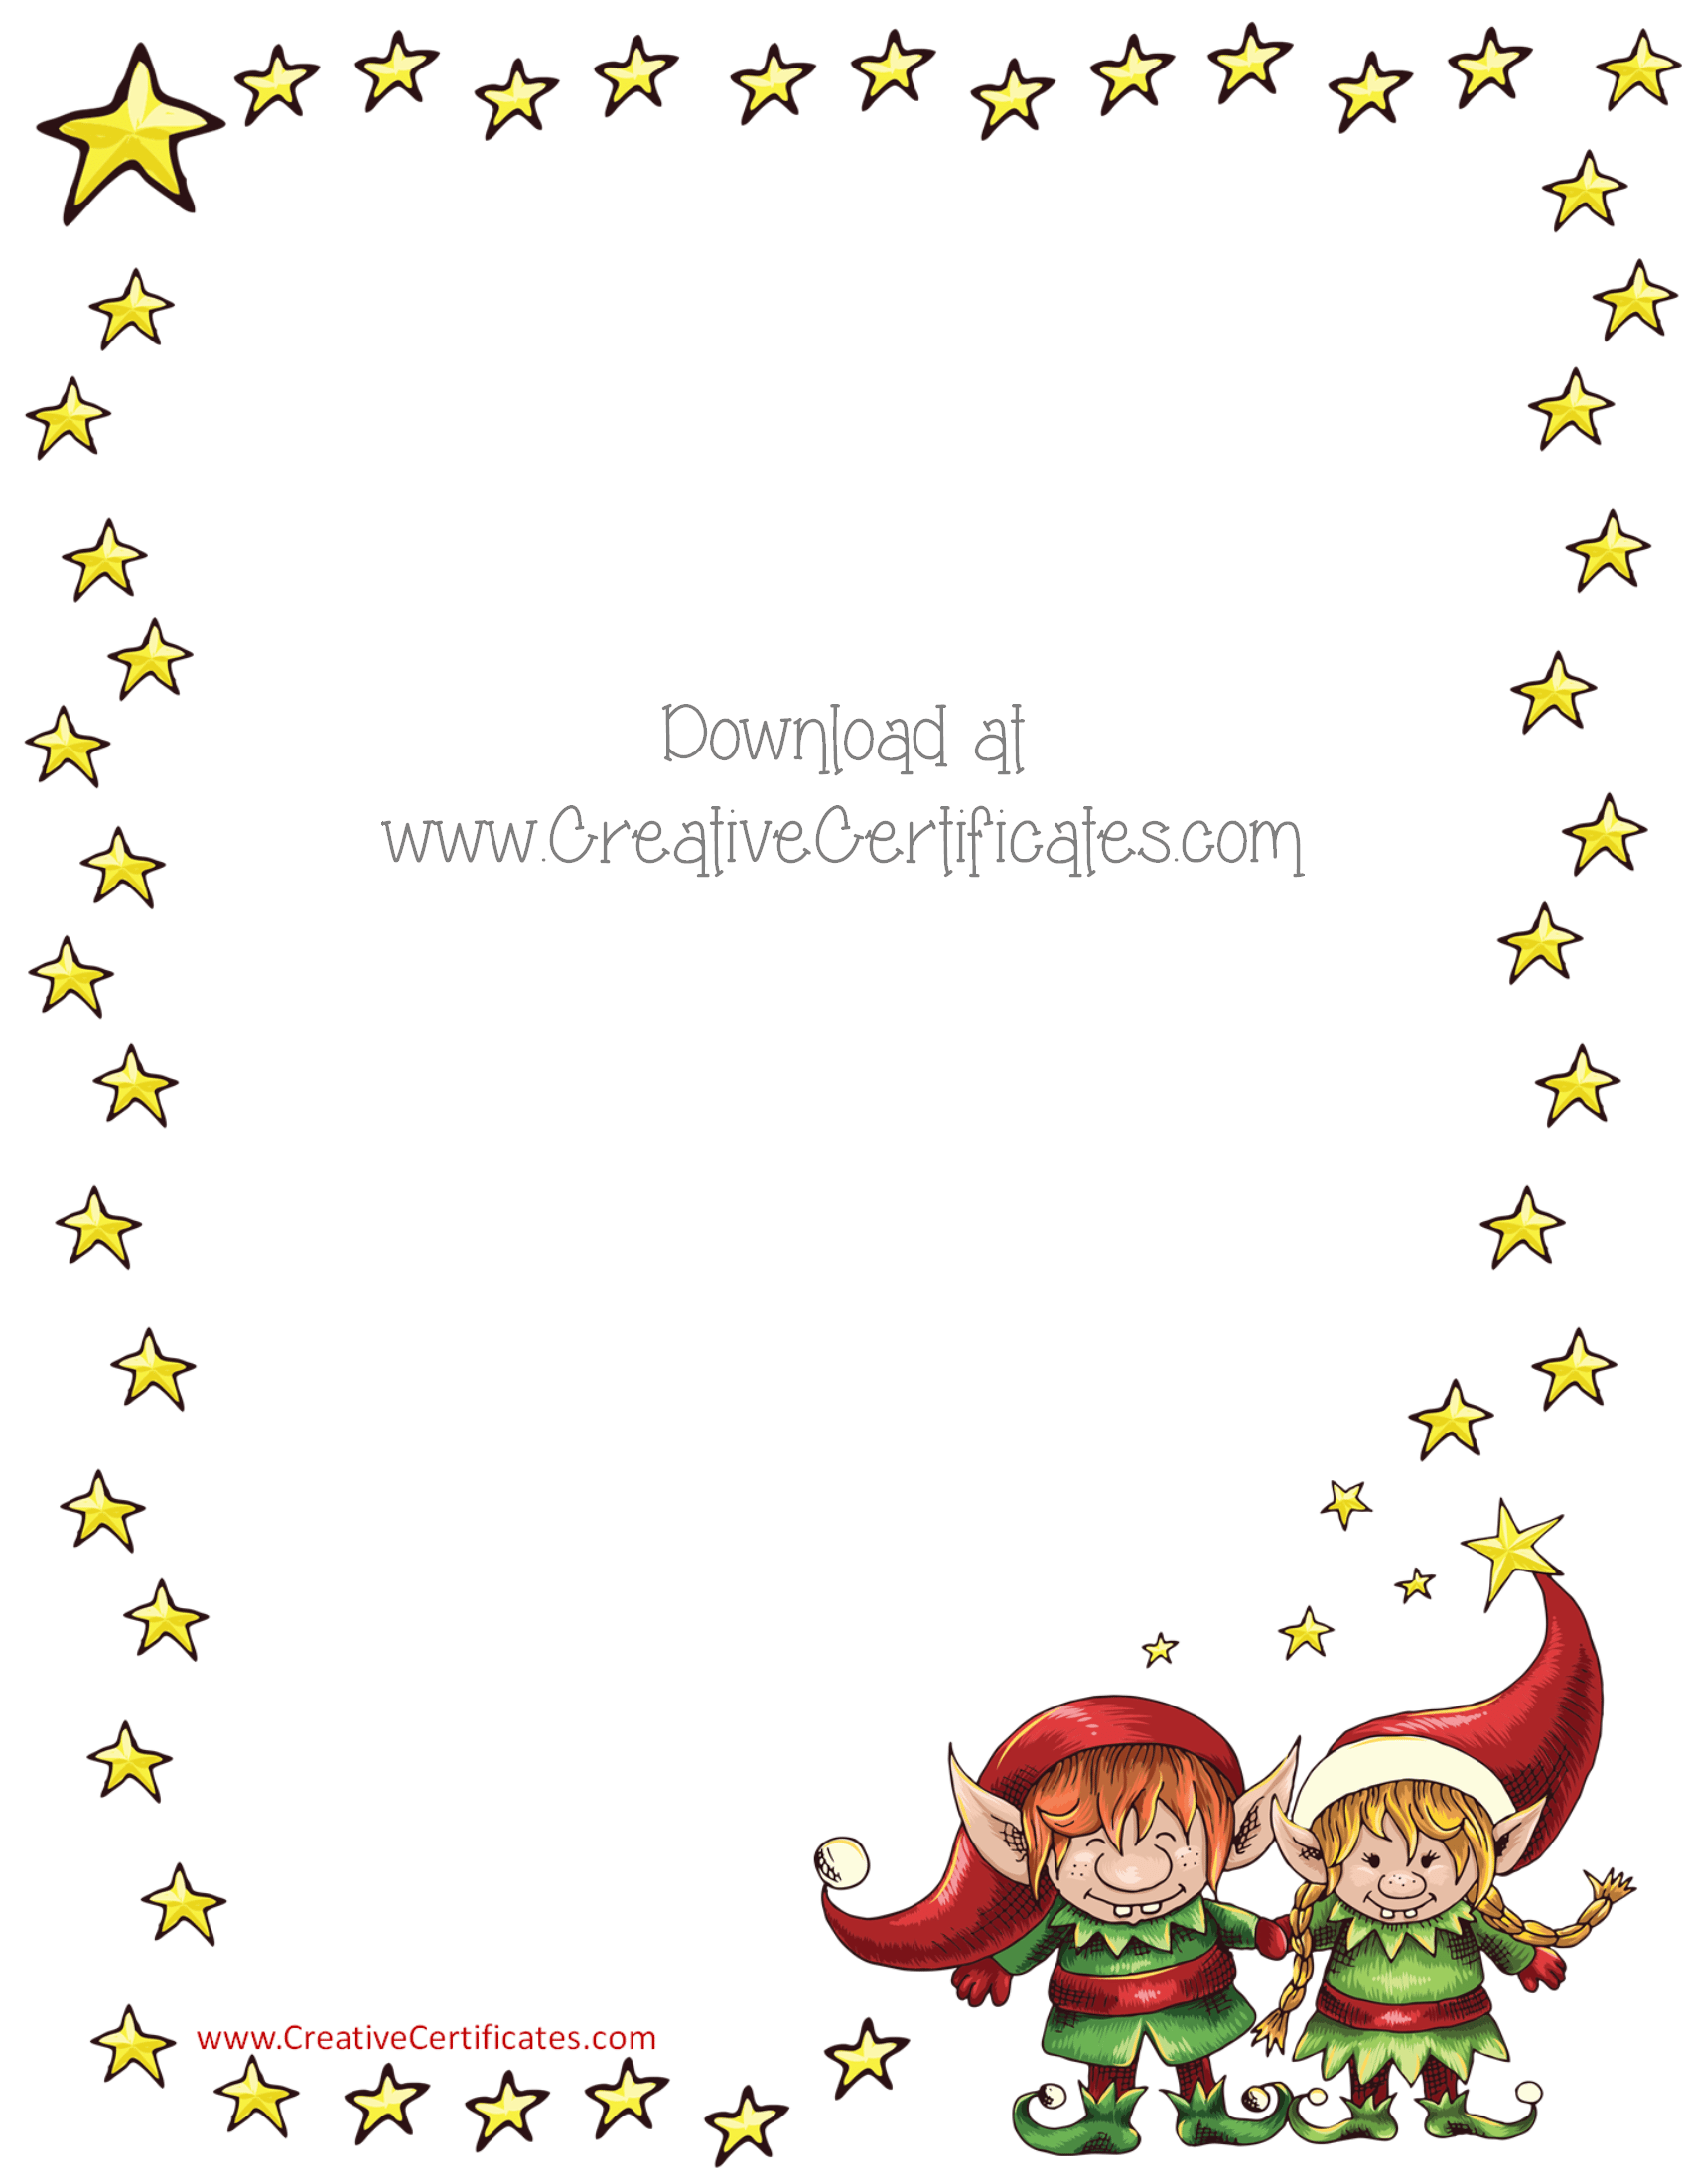 Free Christmas Border Templates - Customize Online or ...